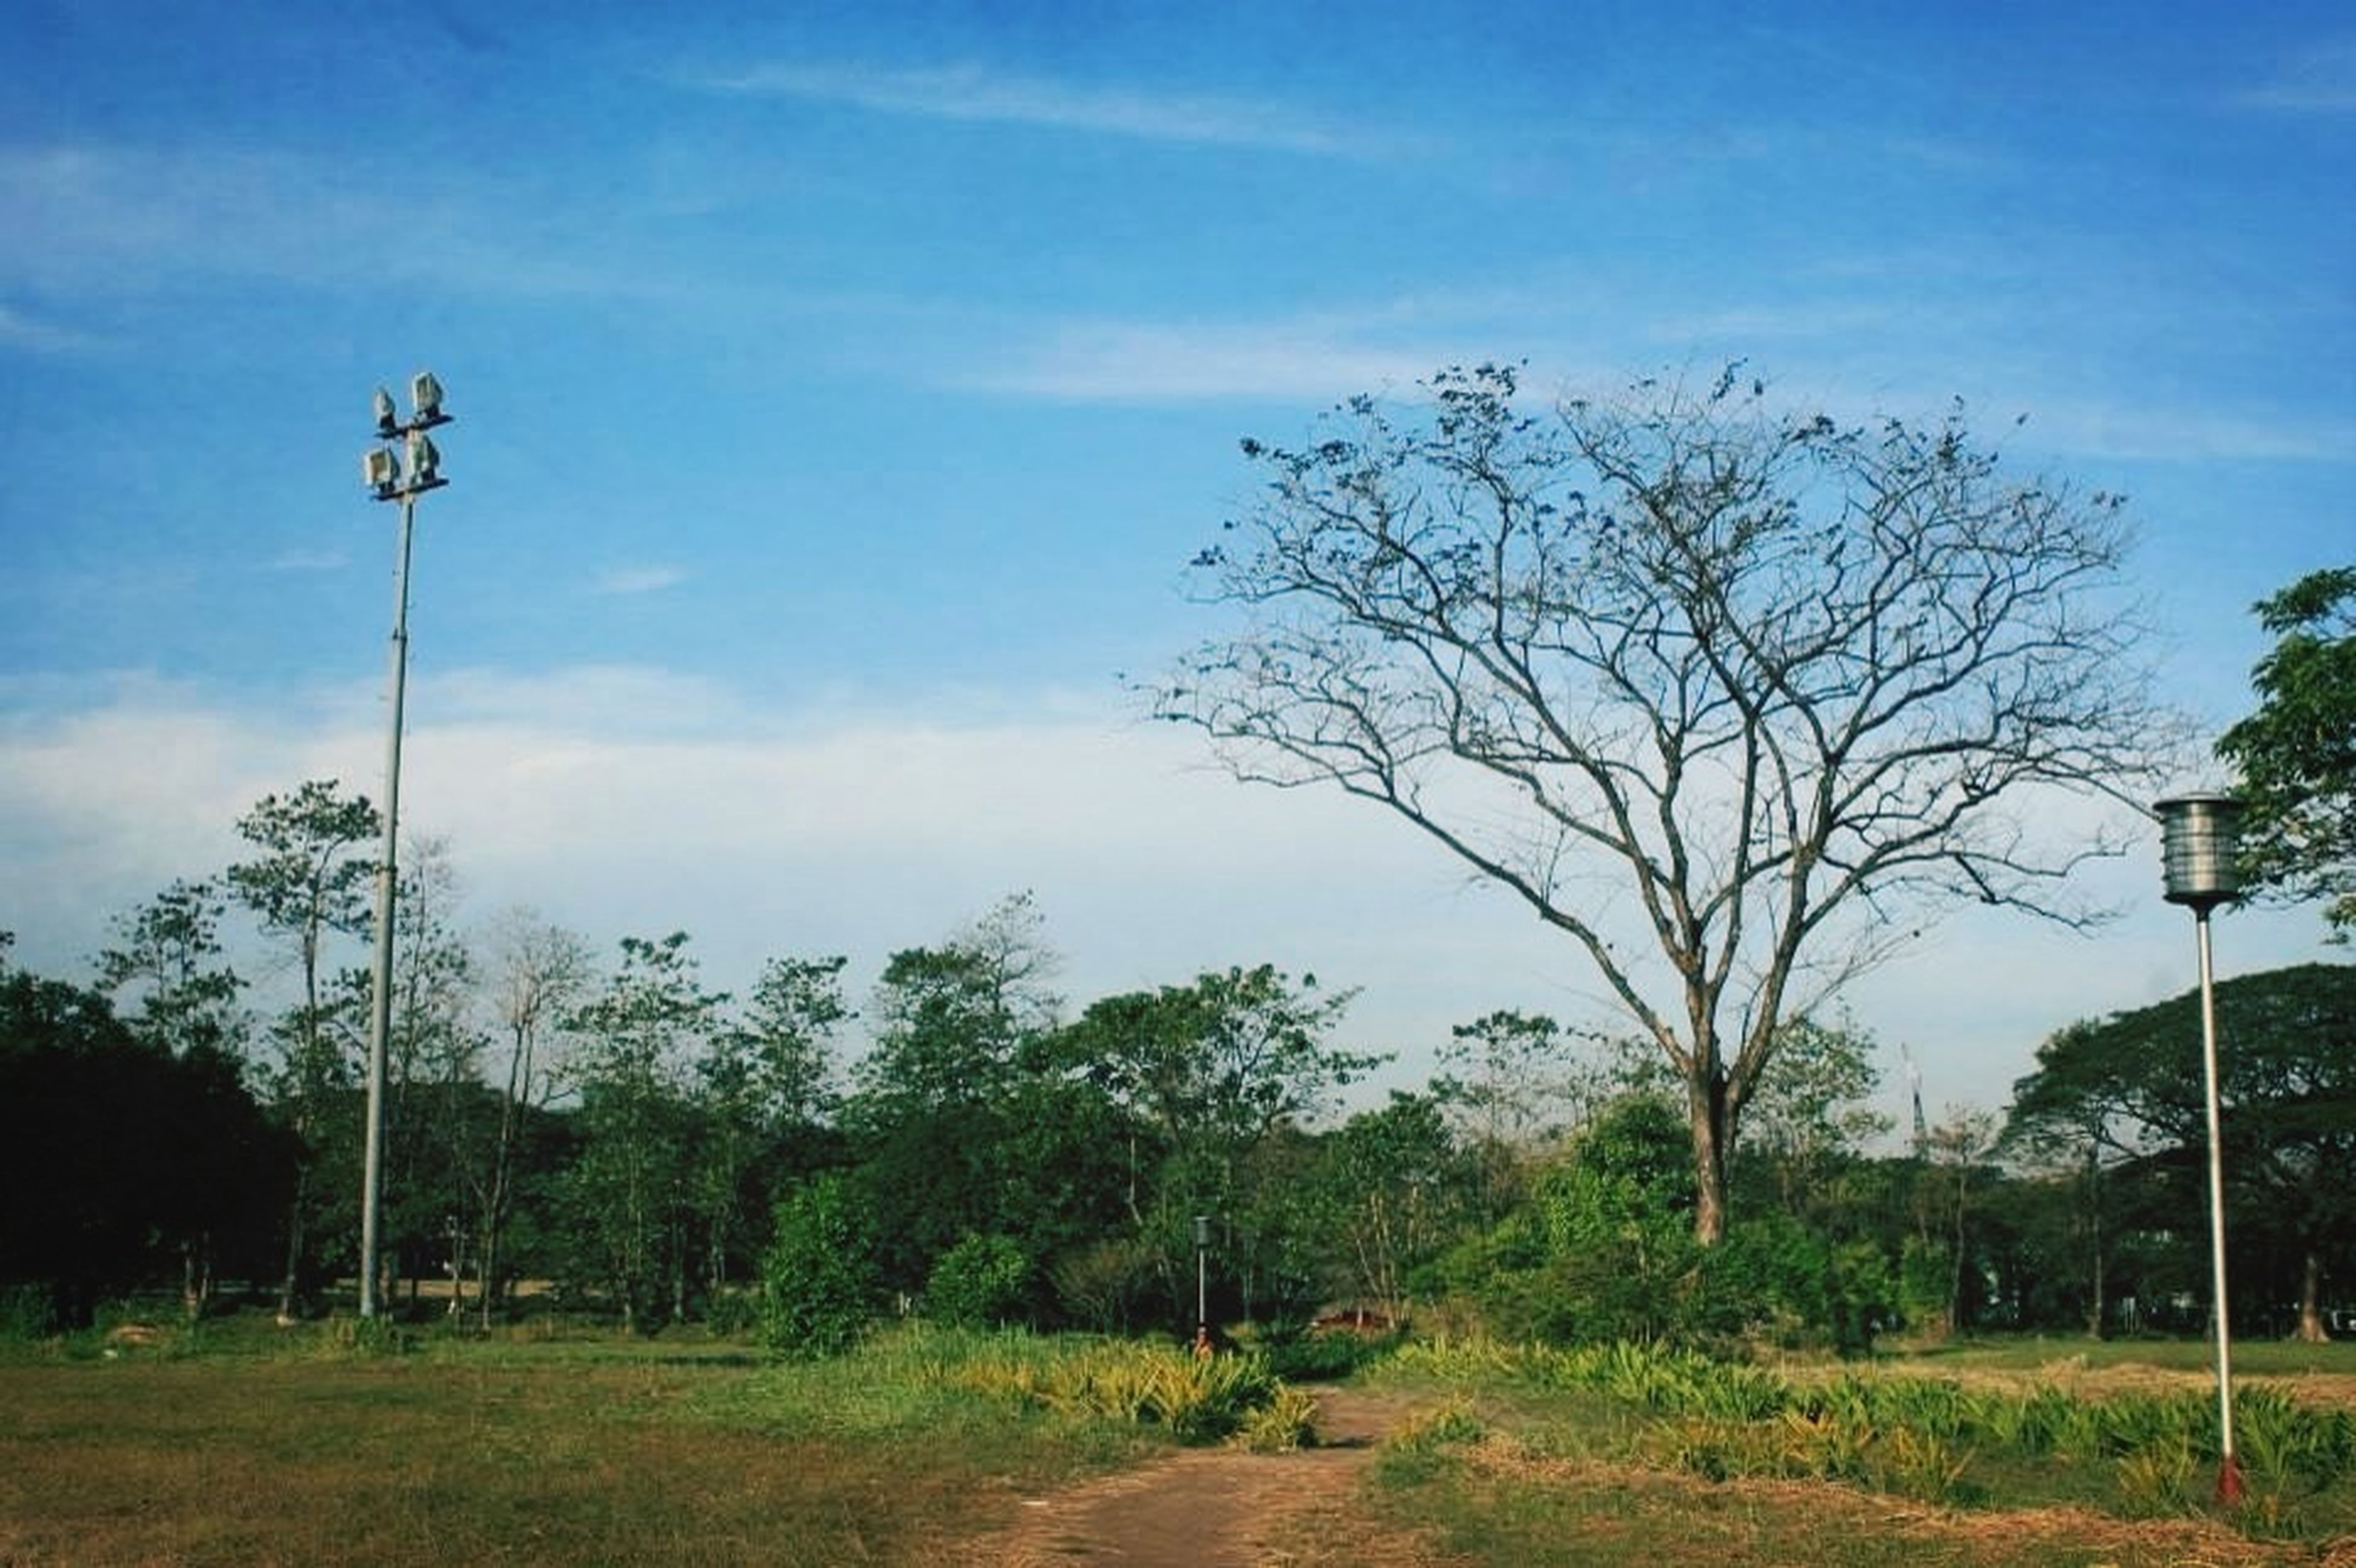 tree, sky, tranquility, tranquil scene, grass, street light, the way forward, nature, bare tree, cloud - sky, scenics, beauty in nature, landscape, growth, branch, cloud, road, field, blue, green color